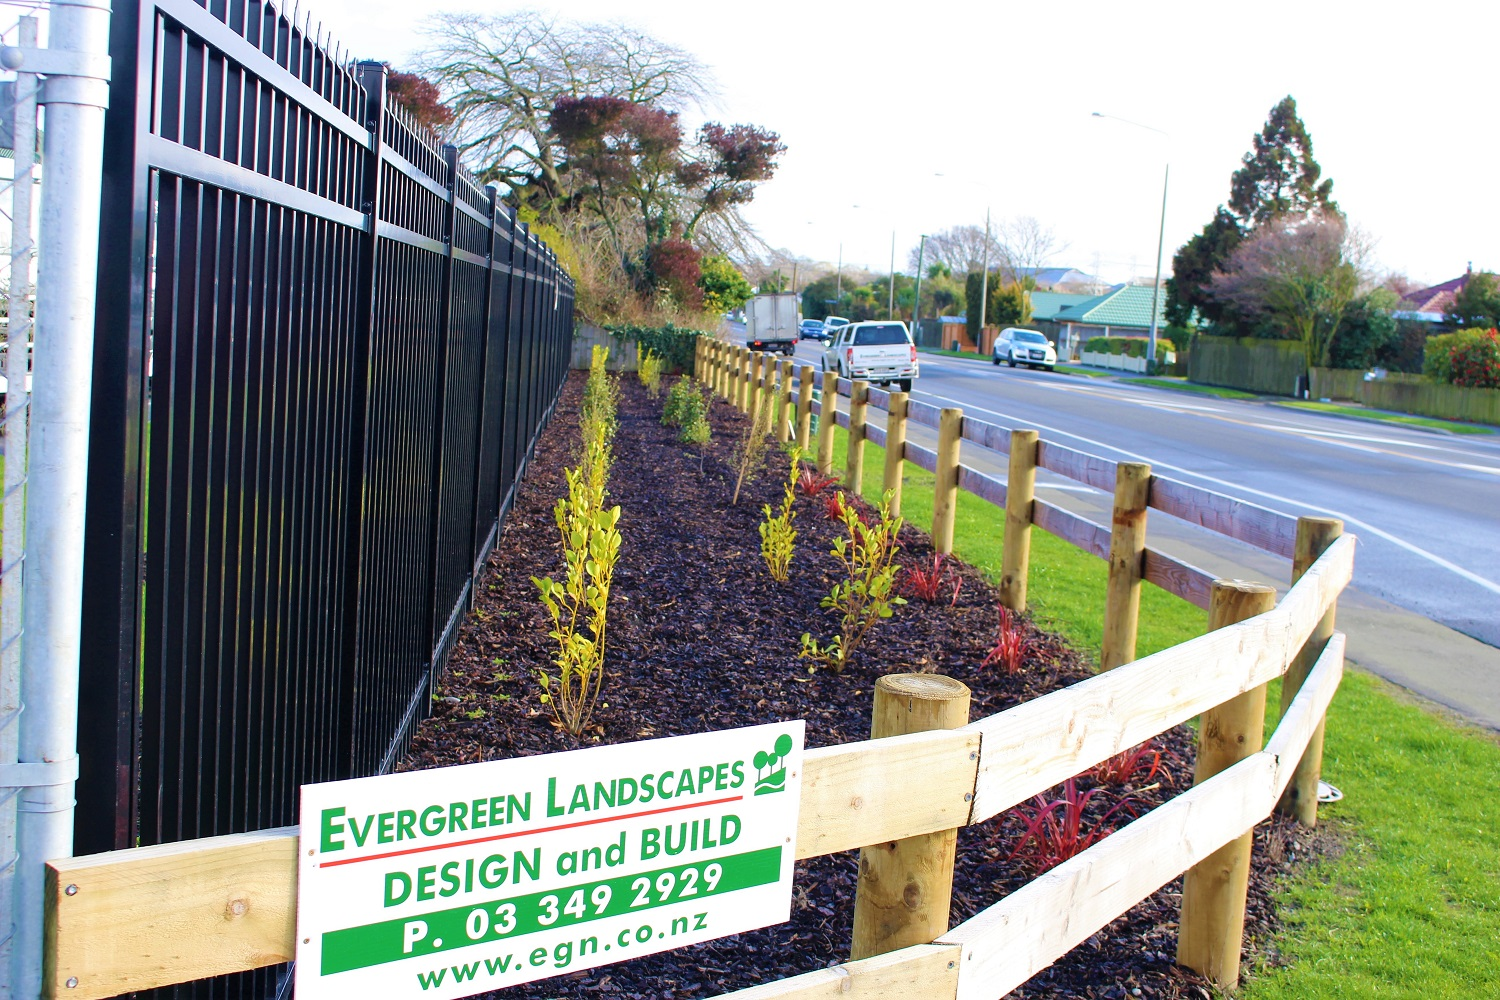 Front yard landscaping with a Evergreen landscapes sign